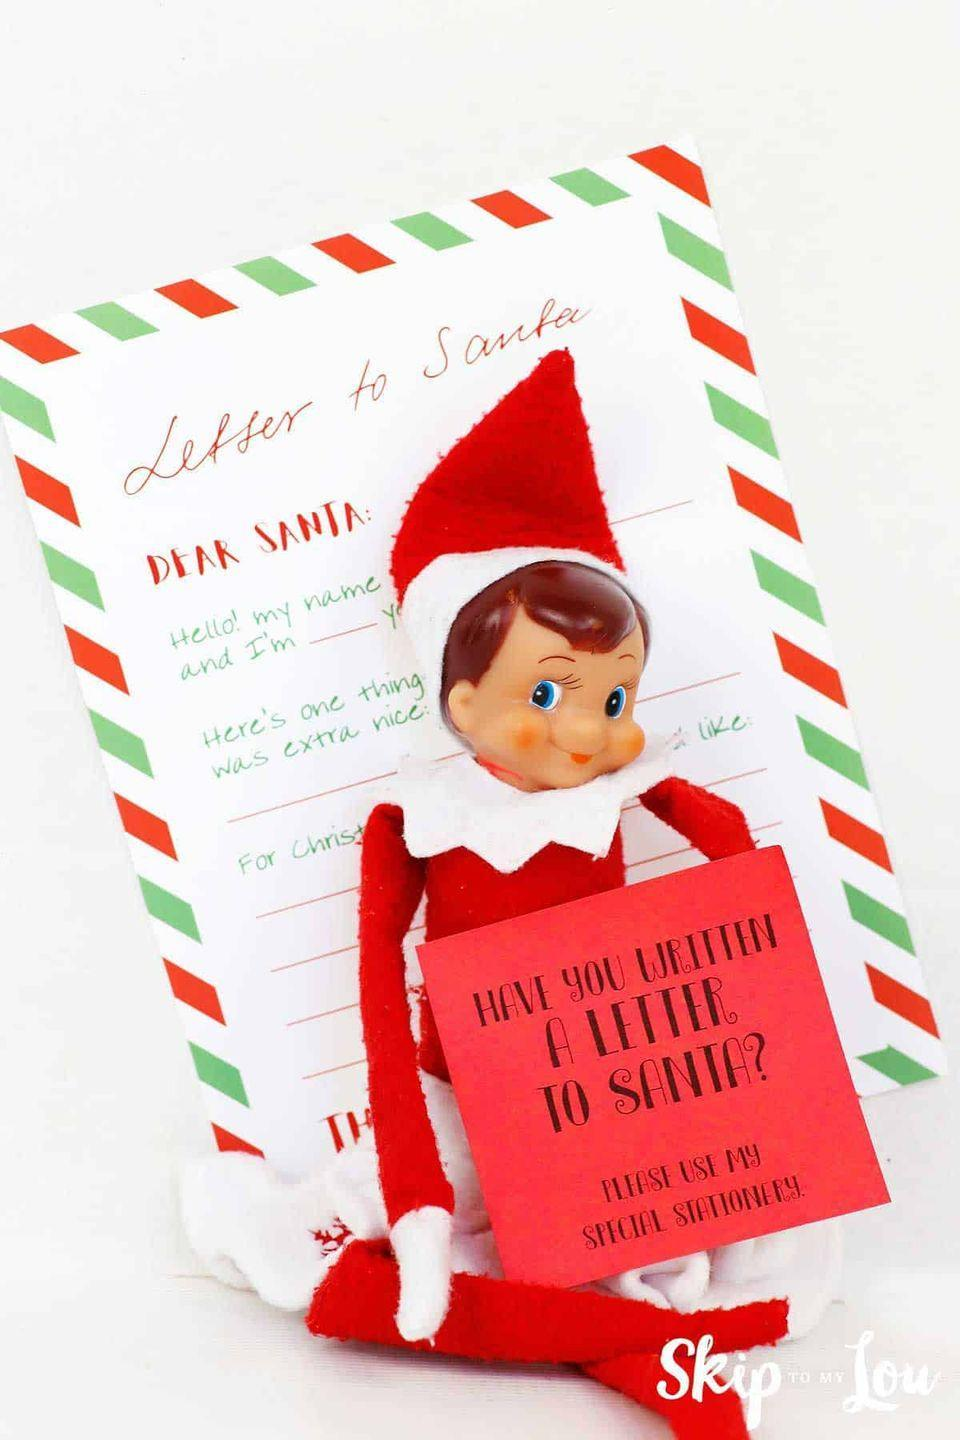 """<p>Free printable stationery makes it easy to set up this sweet activity for your kids. The fill-in-the-blank-style letter is perfect for the youngest set.</p><p><strong>Get the tutorial at <a href=""""https://www.skiptomylou.org/letter-to-santa/"""" rel=""""nofollow noopener"""" target=""""_blank"""" data-ylk=""""slk:Skip to My Lou"""" class=""""link rapid-noclick-resp"""">Skip to My Lou</a>.</strong></p><p><strong><a class=""""link rapid-noclick-resp"""" href=""""https://go.redirectingat.com?id=74968X1596630&url=https%3A%2F%2Fwww.walmart.com%2Fsearch%2F%3Fquery%3Delf%2Bon%2Bthe%2Bshelf&sref=https%3A%2F%2Fwww.thepioneerwoman.com%2Fholidays-celebrations%2Fg34080491%2Ffunny-elf-on-the-shelf-ideas%2F"""" rel=""""nofollow noopener"""" target=""""_blank"""" data-ylk=""""slk:SHOP ELF ON THE SHELF"""">SHOP ELF ON THE SHELF</a><br></strong></p>"""